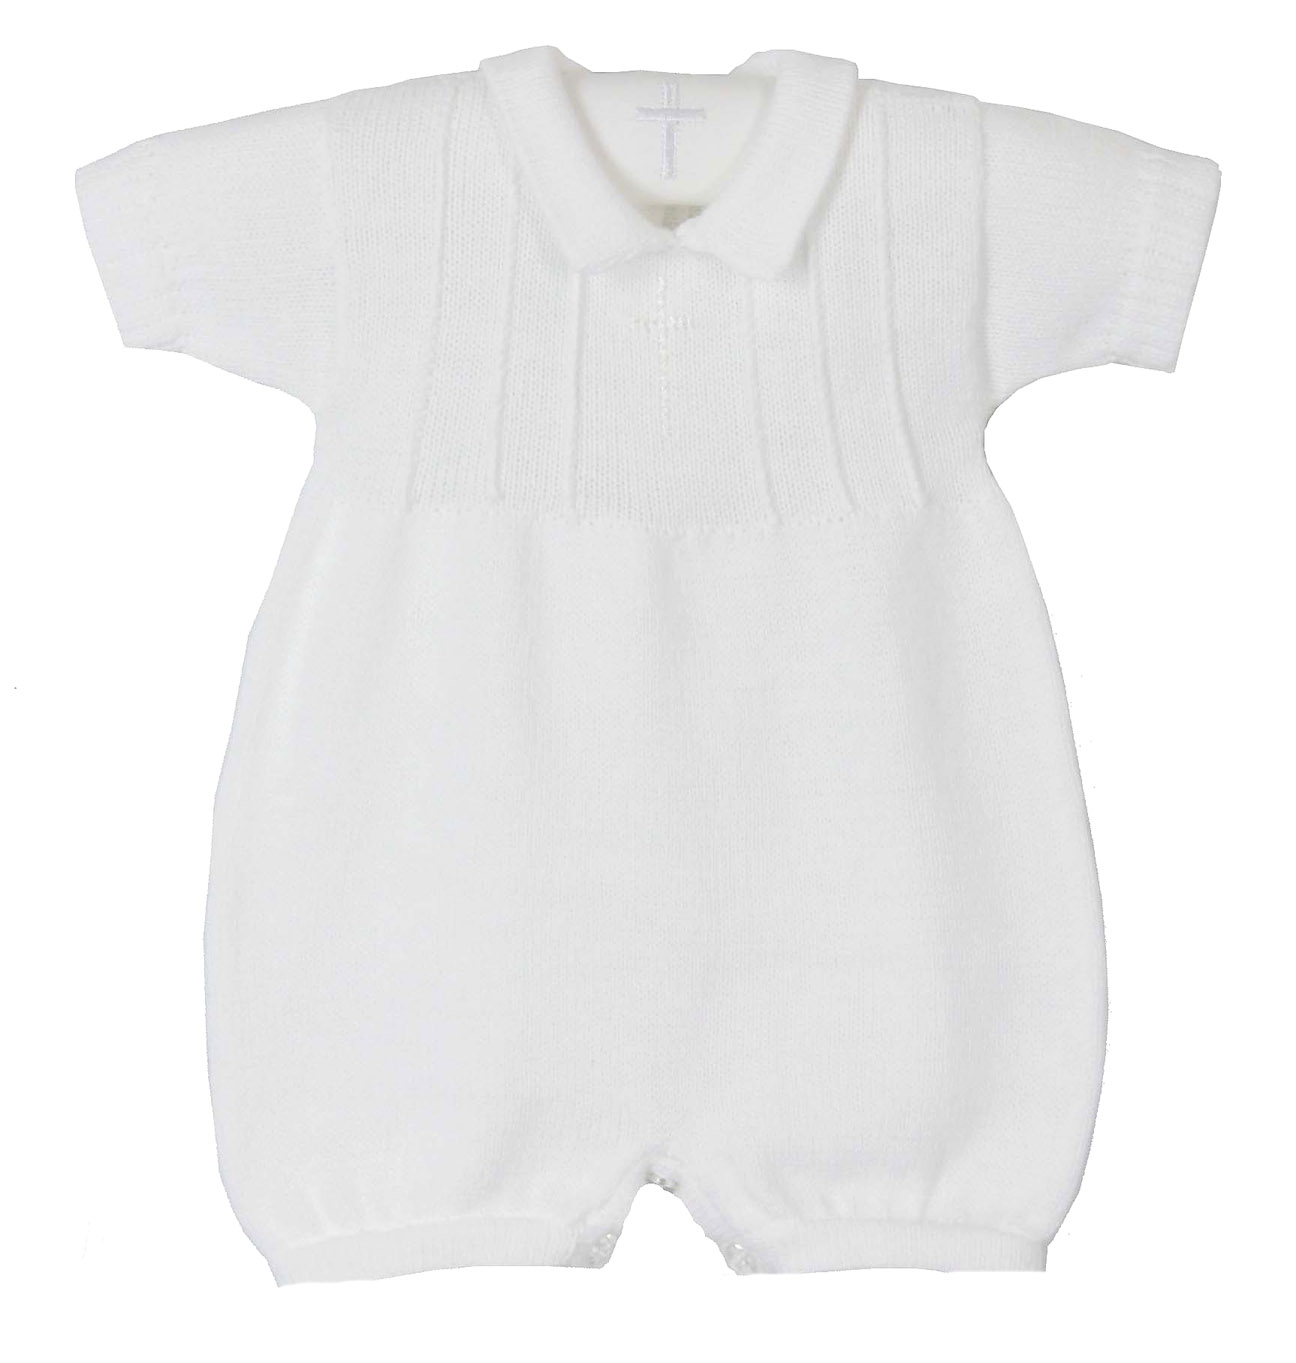 bfcbf47e7 NEW Baby s Trousseau White Cotton Knit Romper with Embroidered Cross ...